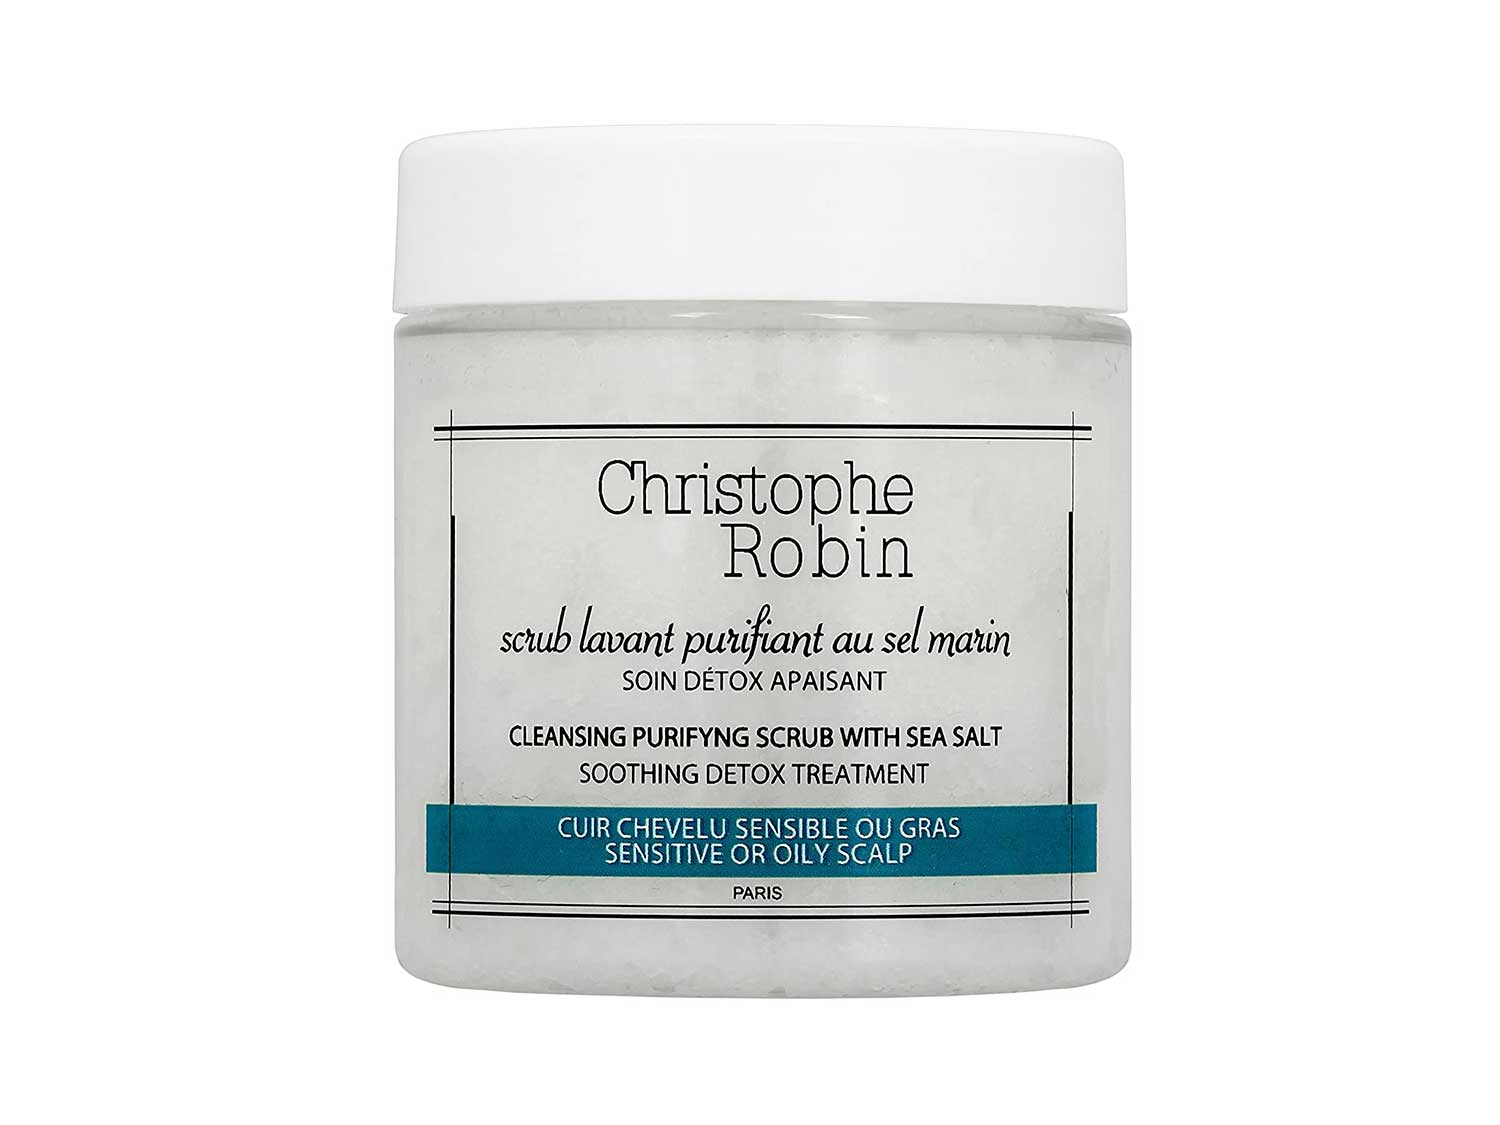 Christophe Robin Cleansing Purifying Scrub with Sea Salt 75 ml